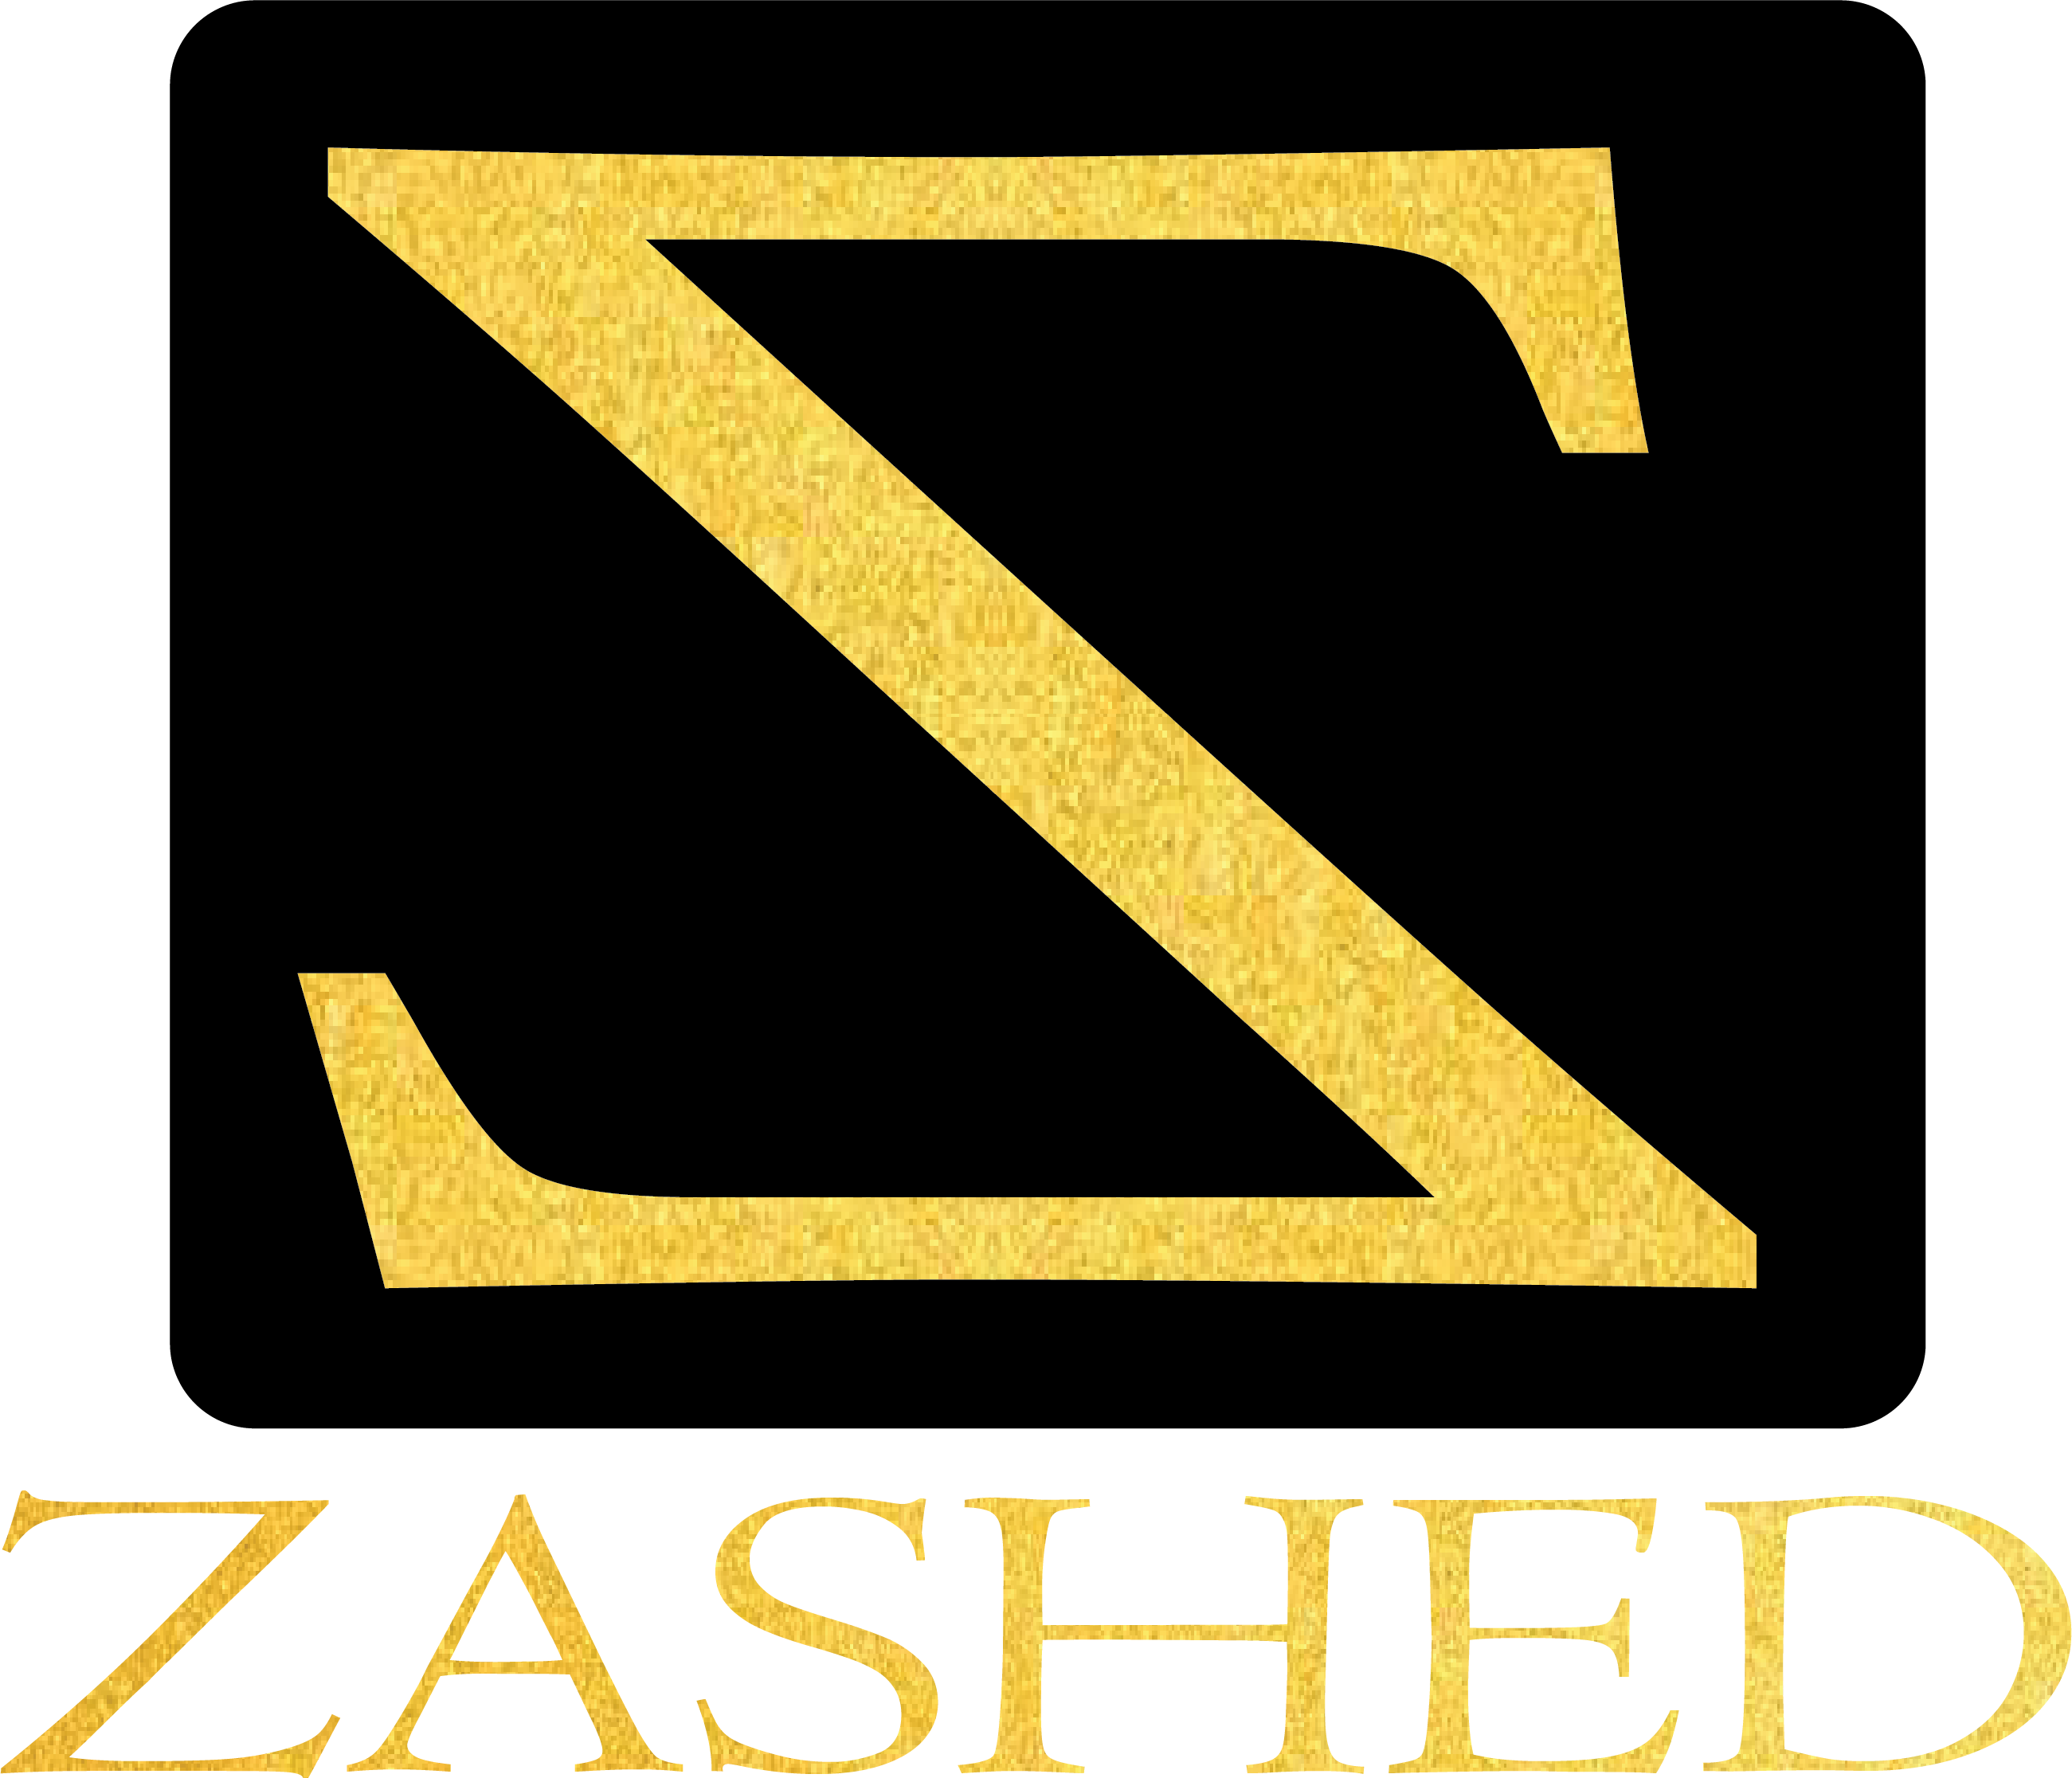 sr.-fashion-designer-delhi-Zashed-1years-2years-full-time